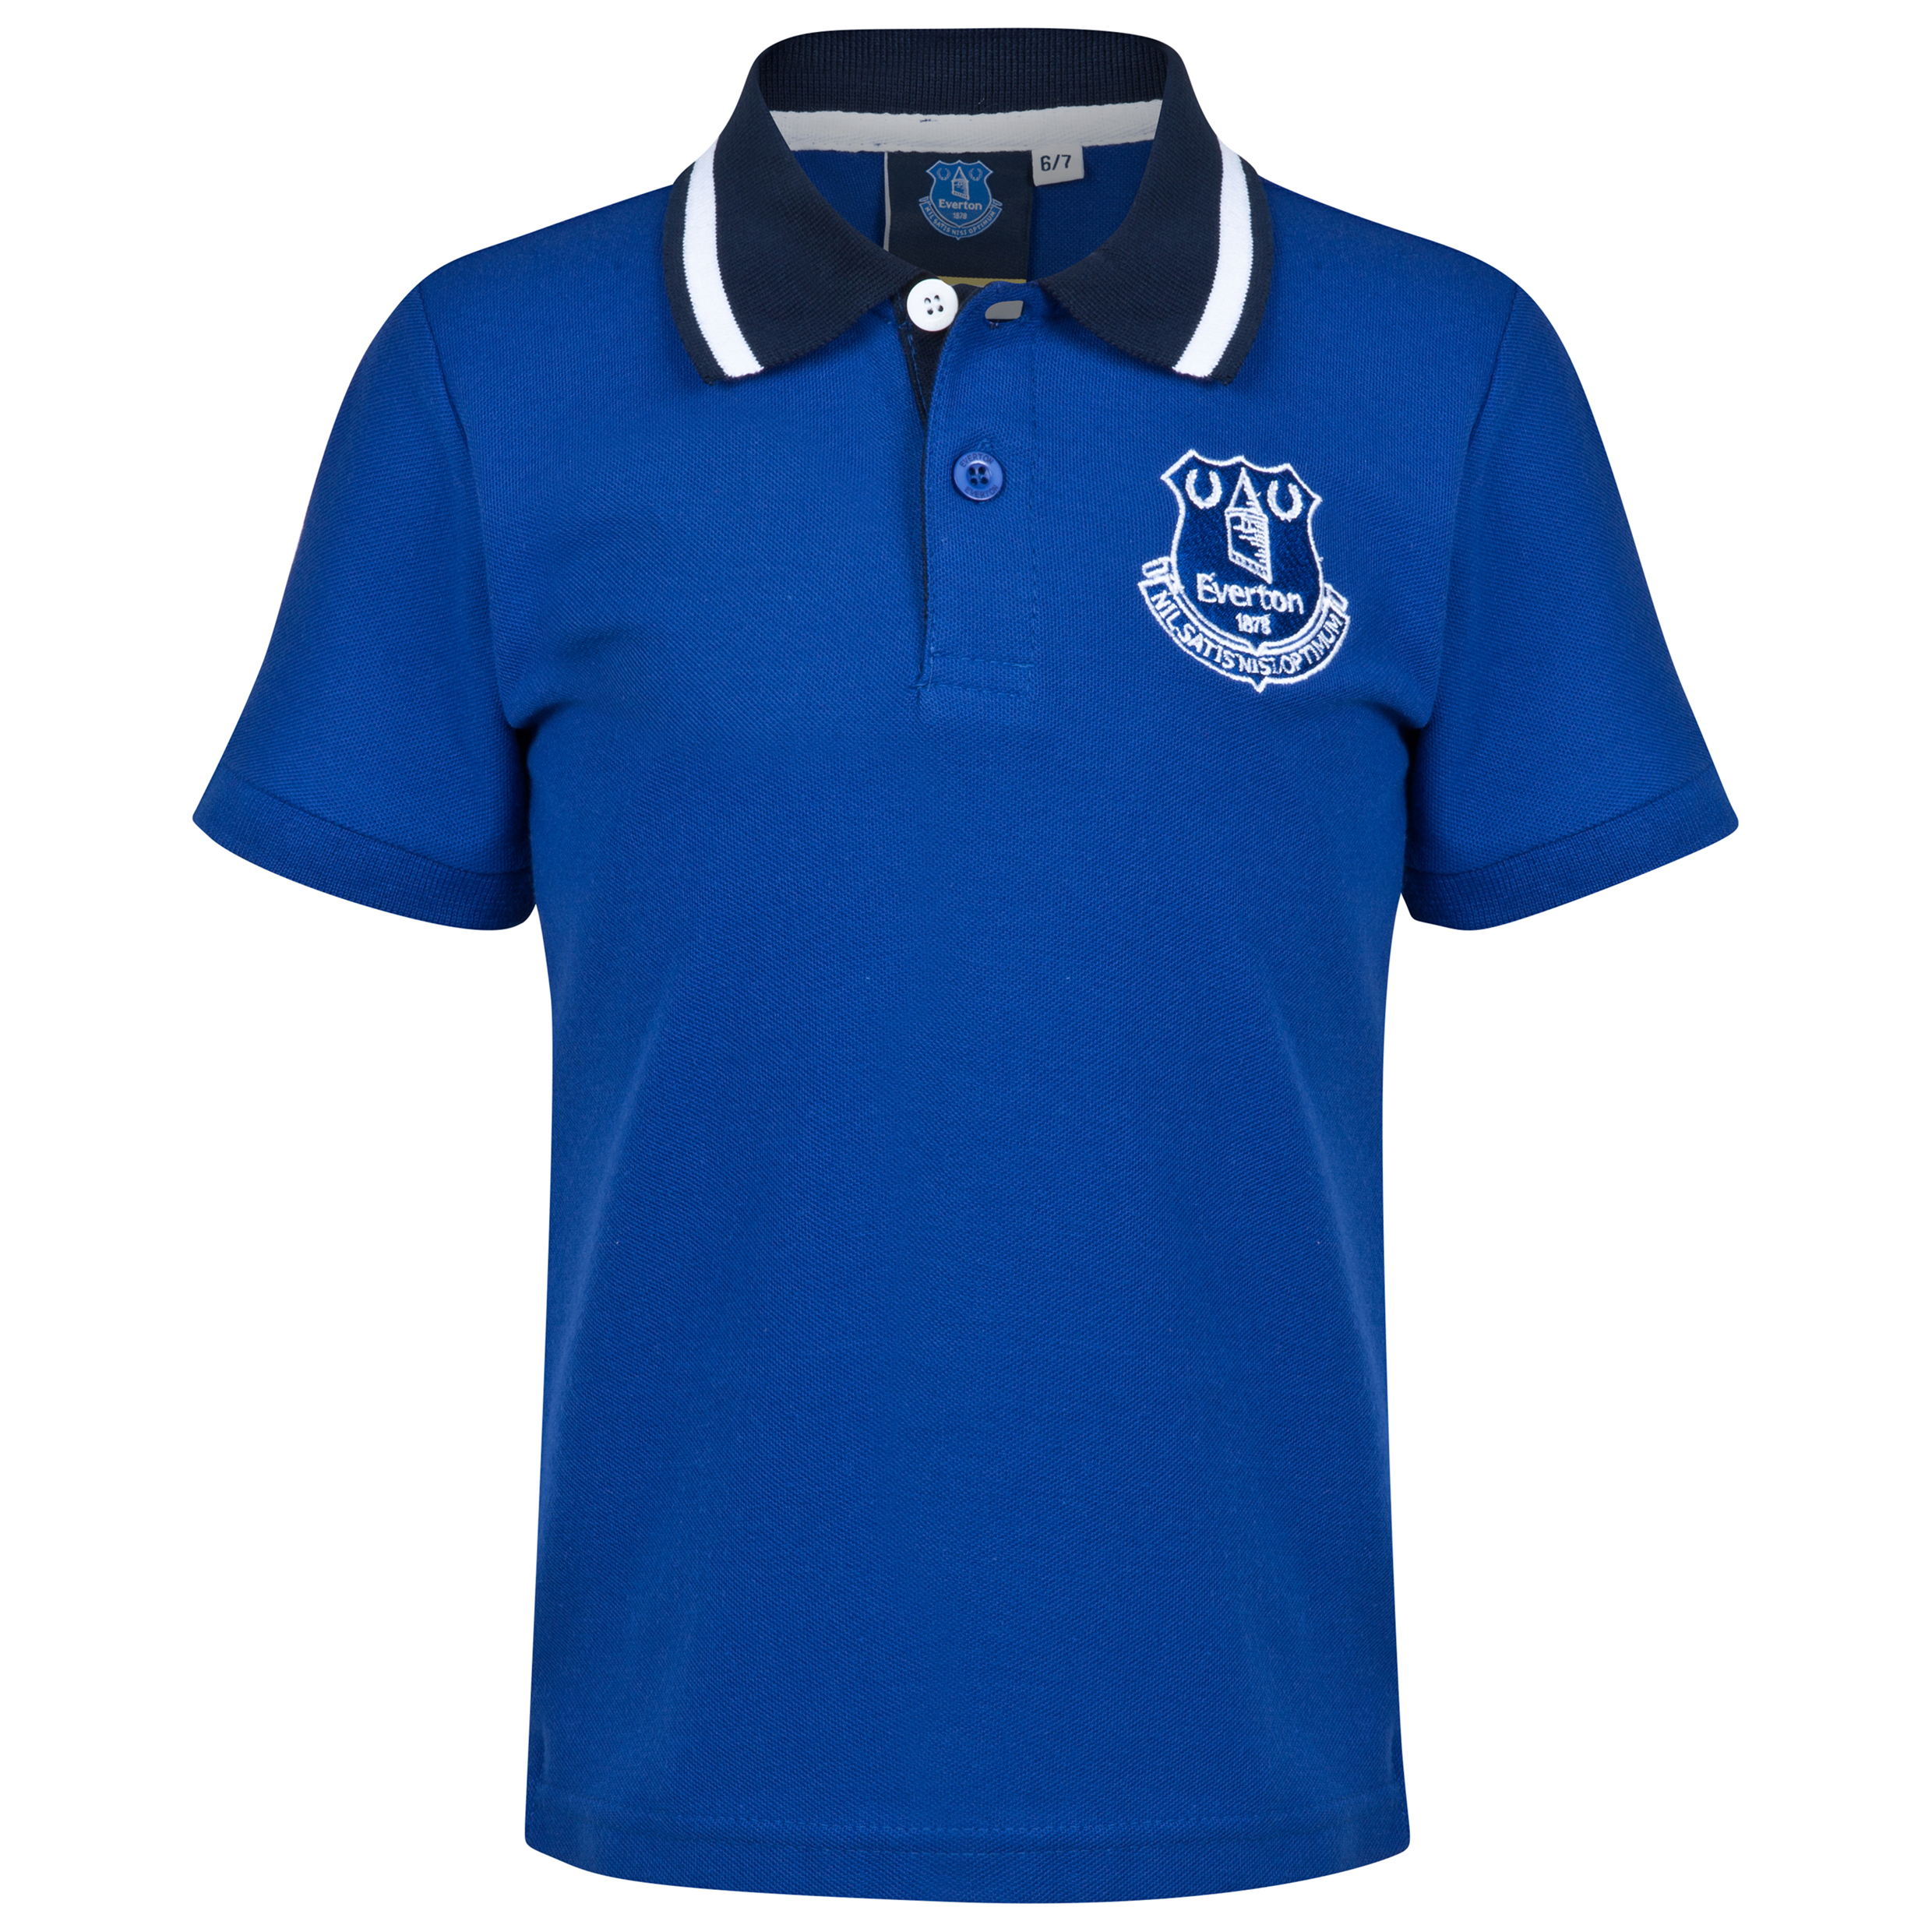 Everton Essential Polo Shirt - Everton Blue - Older Boys